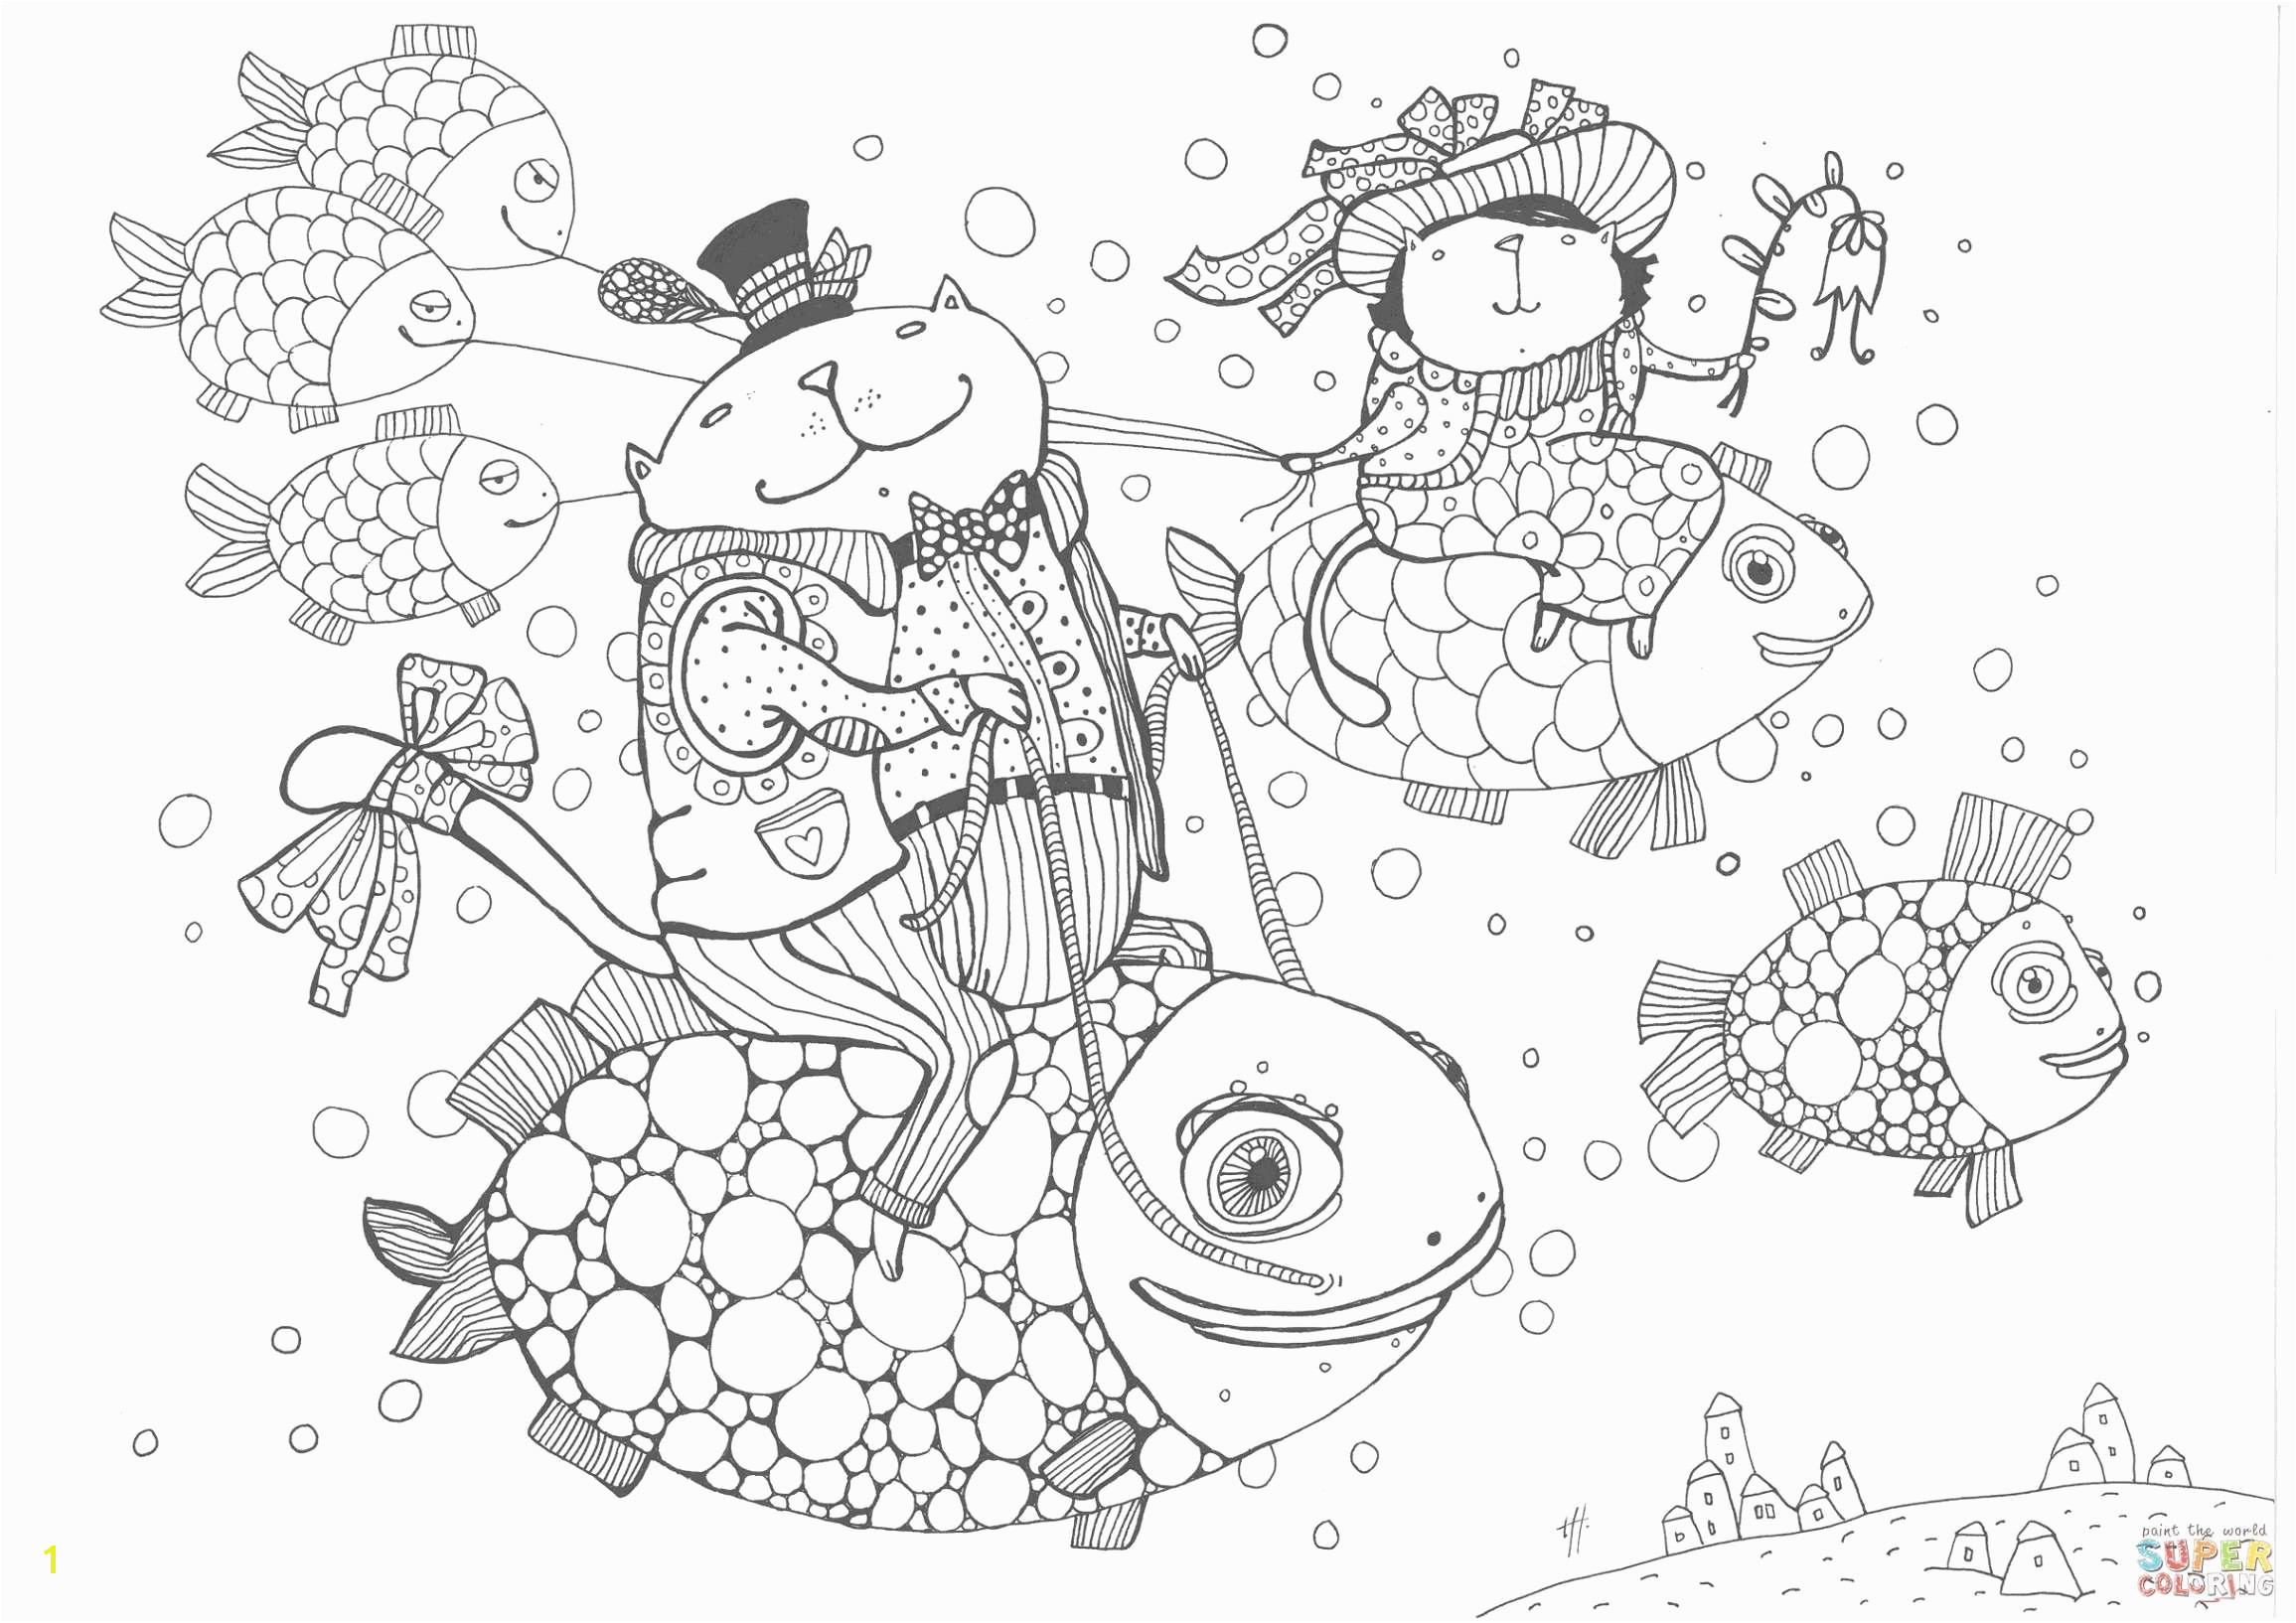 Minnie Mouse Christmas Coloring Pages Free Superhero Coloring Pages New Free Printable Art 0 0d